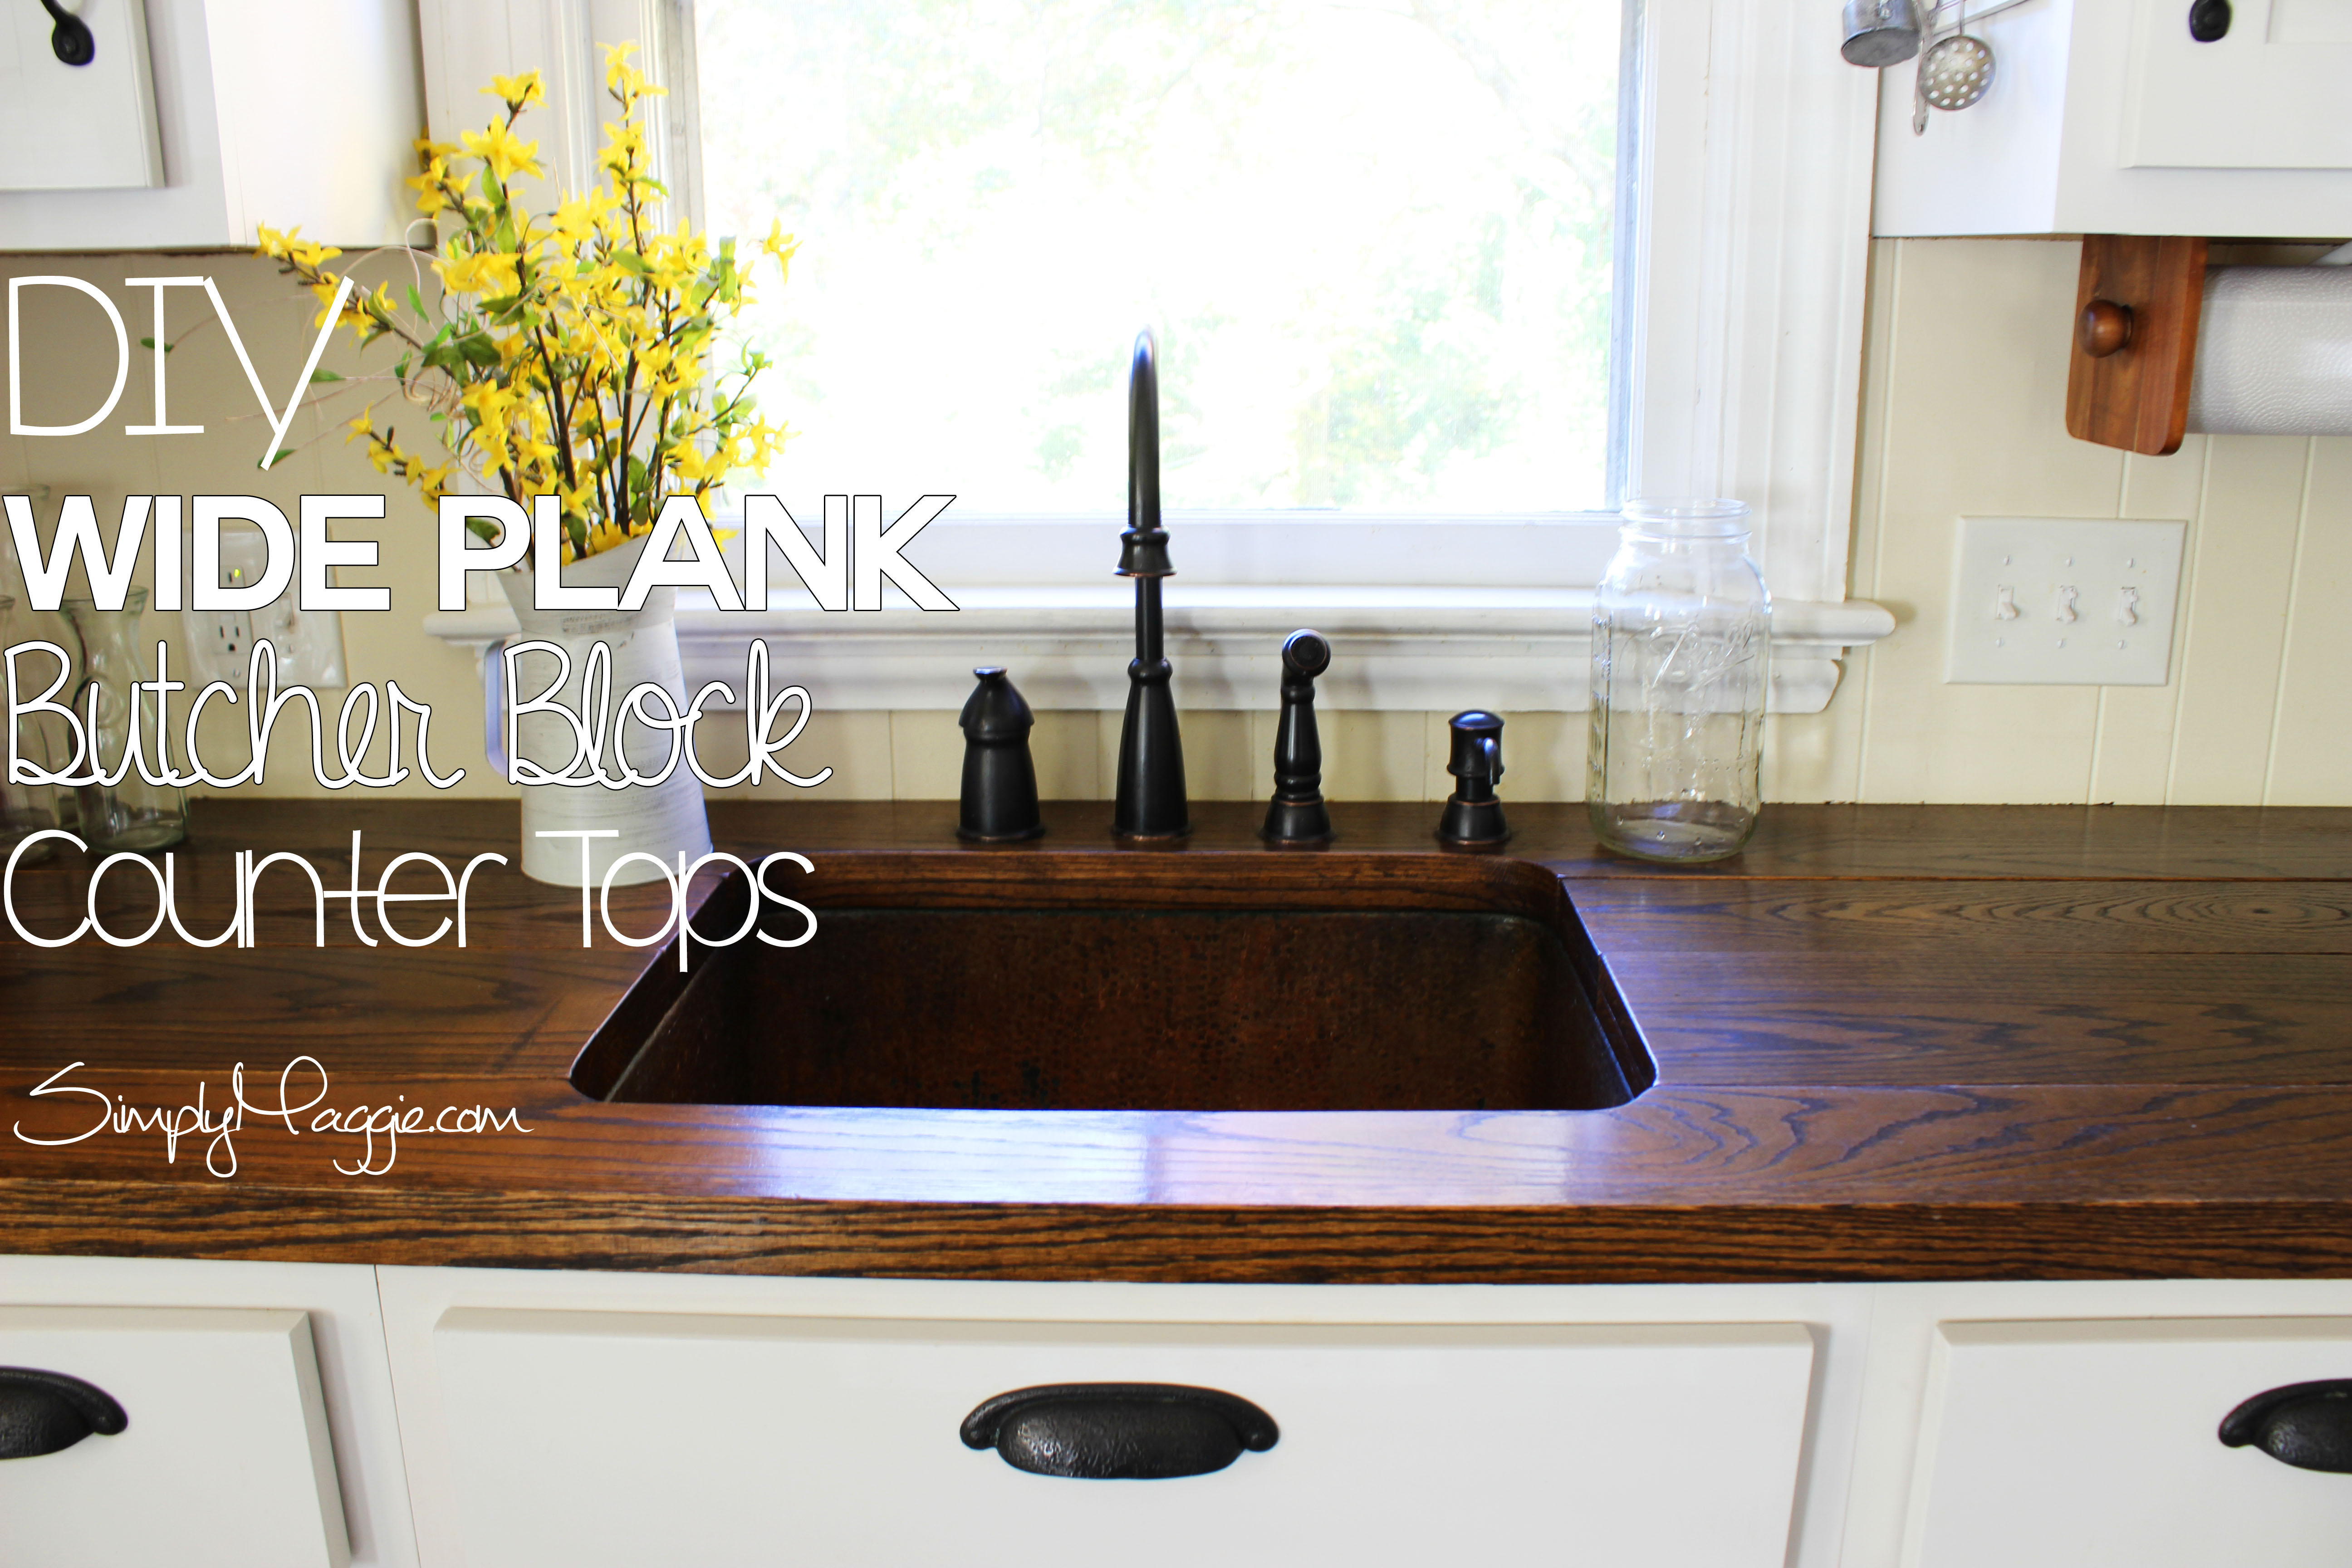 - DIY Wide Plank Butcher Block Counter Tops SimplyMaggie.com